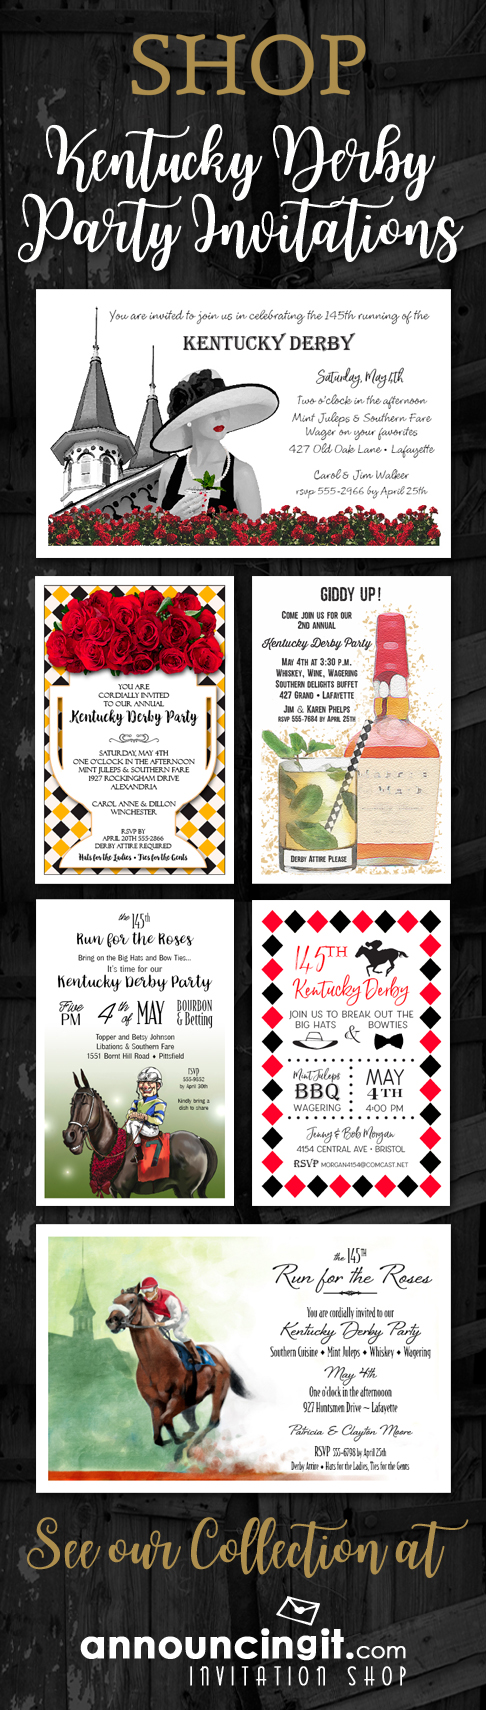 Shop Kentucky Derby Party Invitations at Announcingit.com